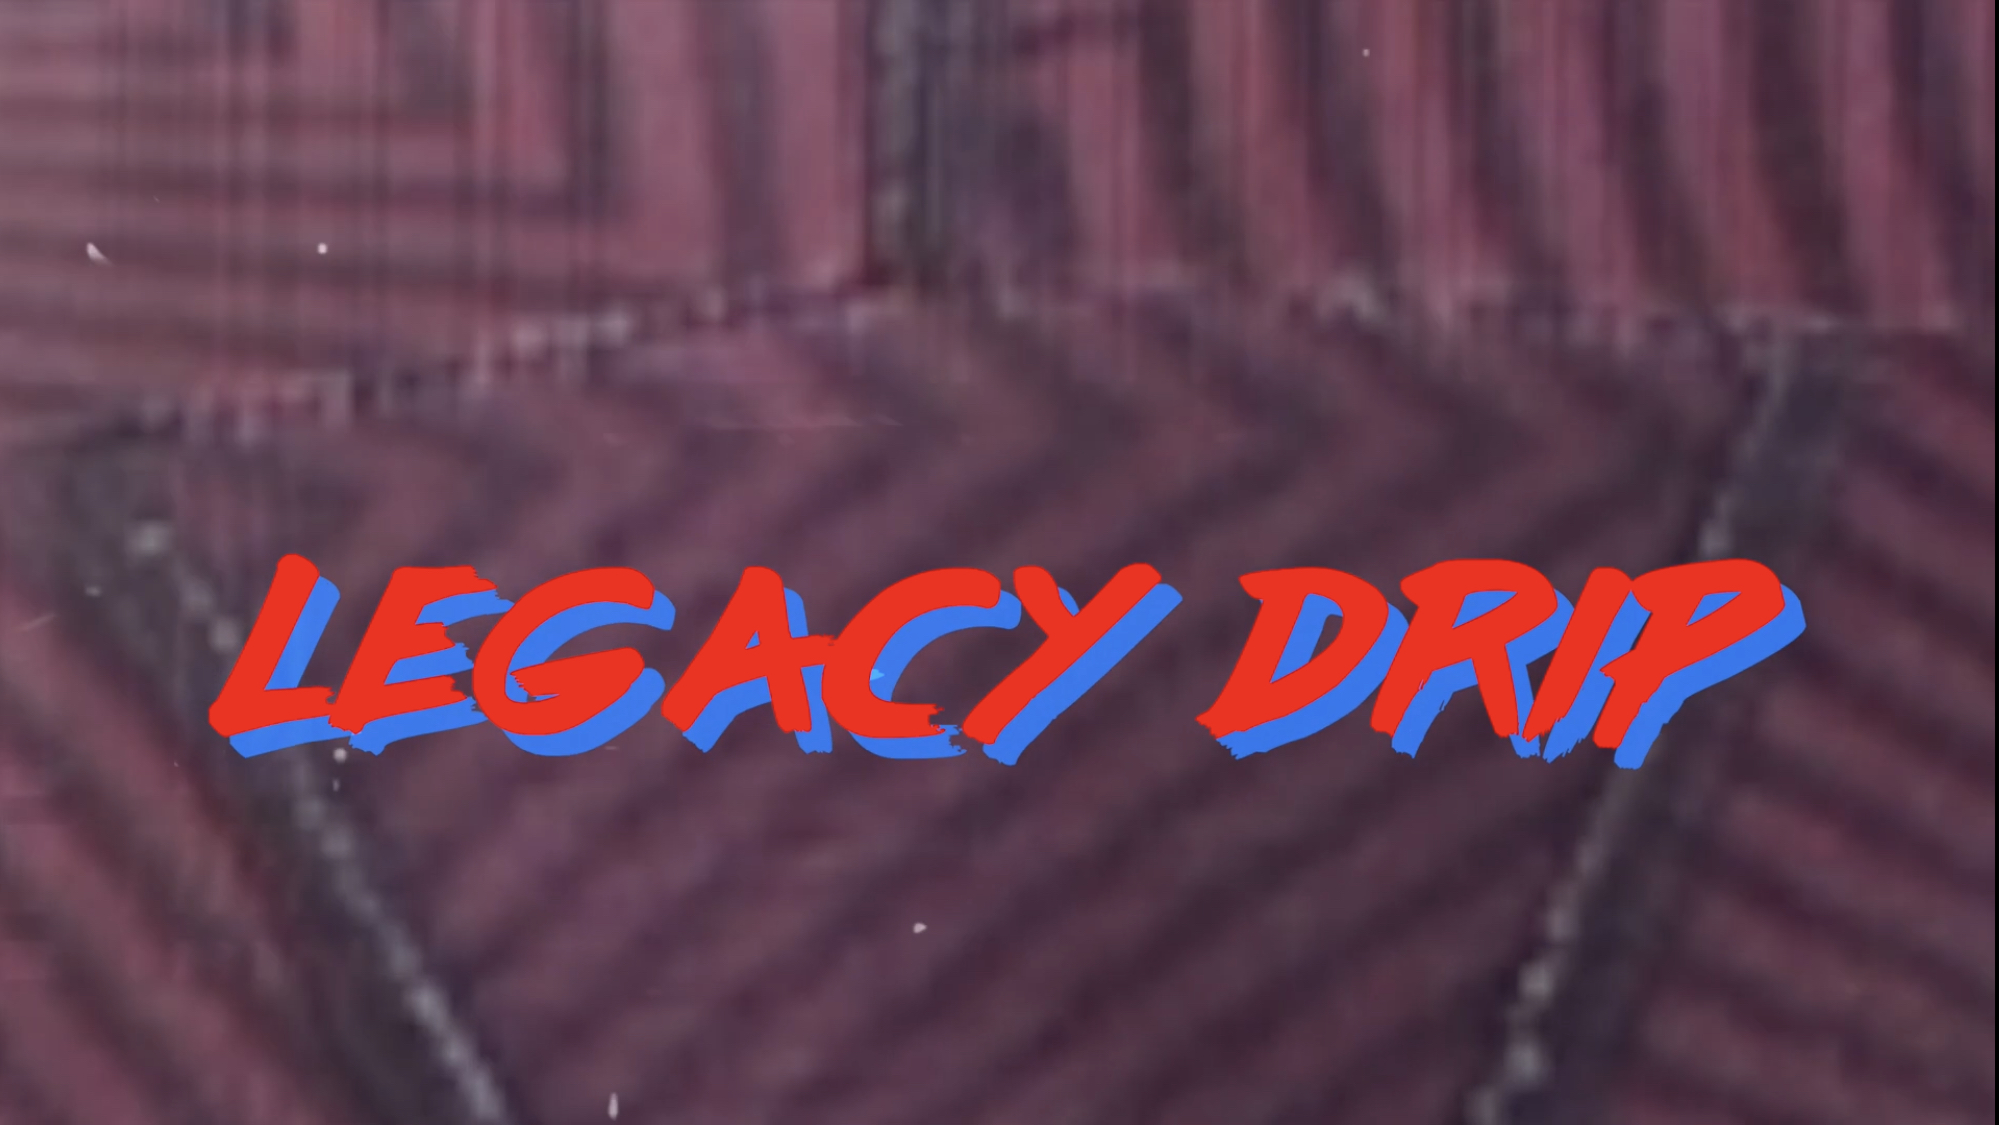 iNTeLL, GFTD & 2nd Generation Wu - LEGACY DRIP (Official Music Video)